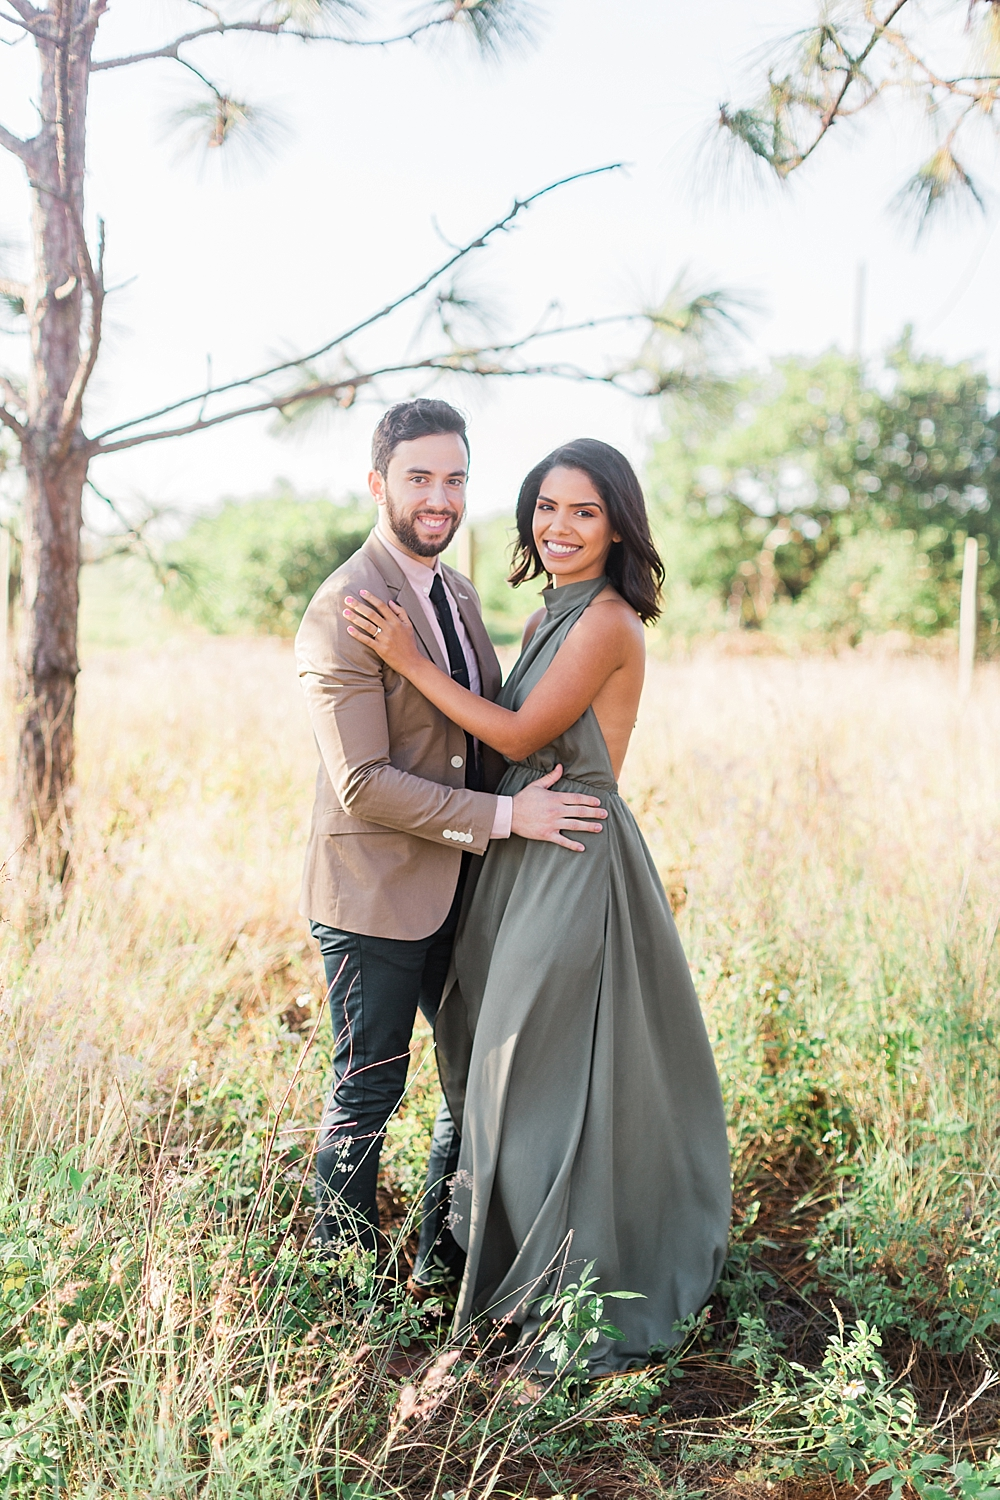 Janiece + Chris | The Sweetest Bok Tower Gardens Engagement Session | Ashley Holstein Film Photography